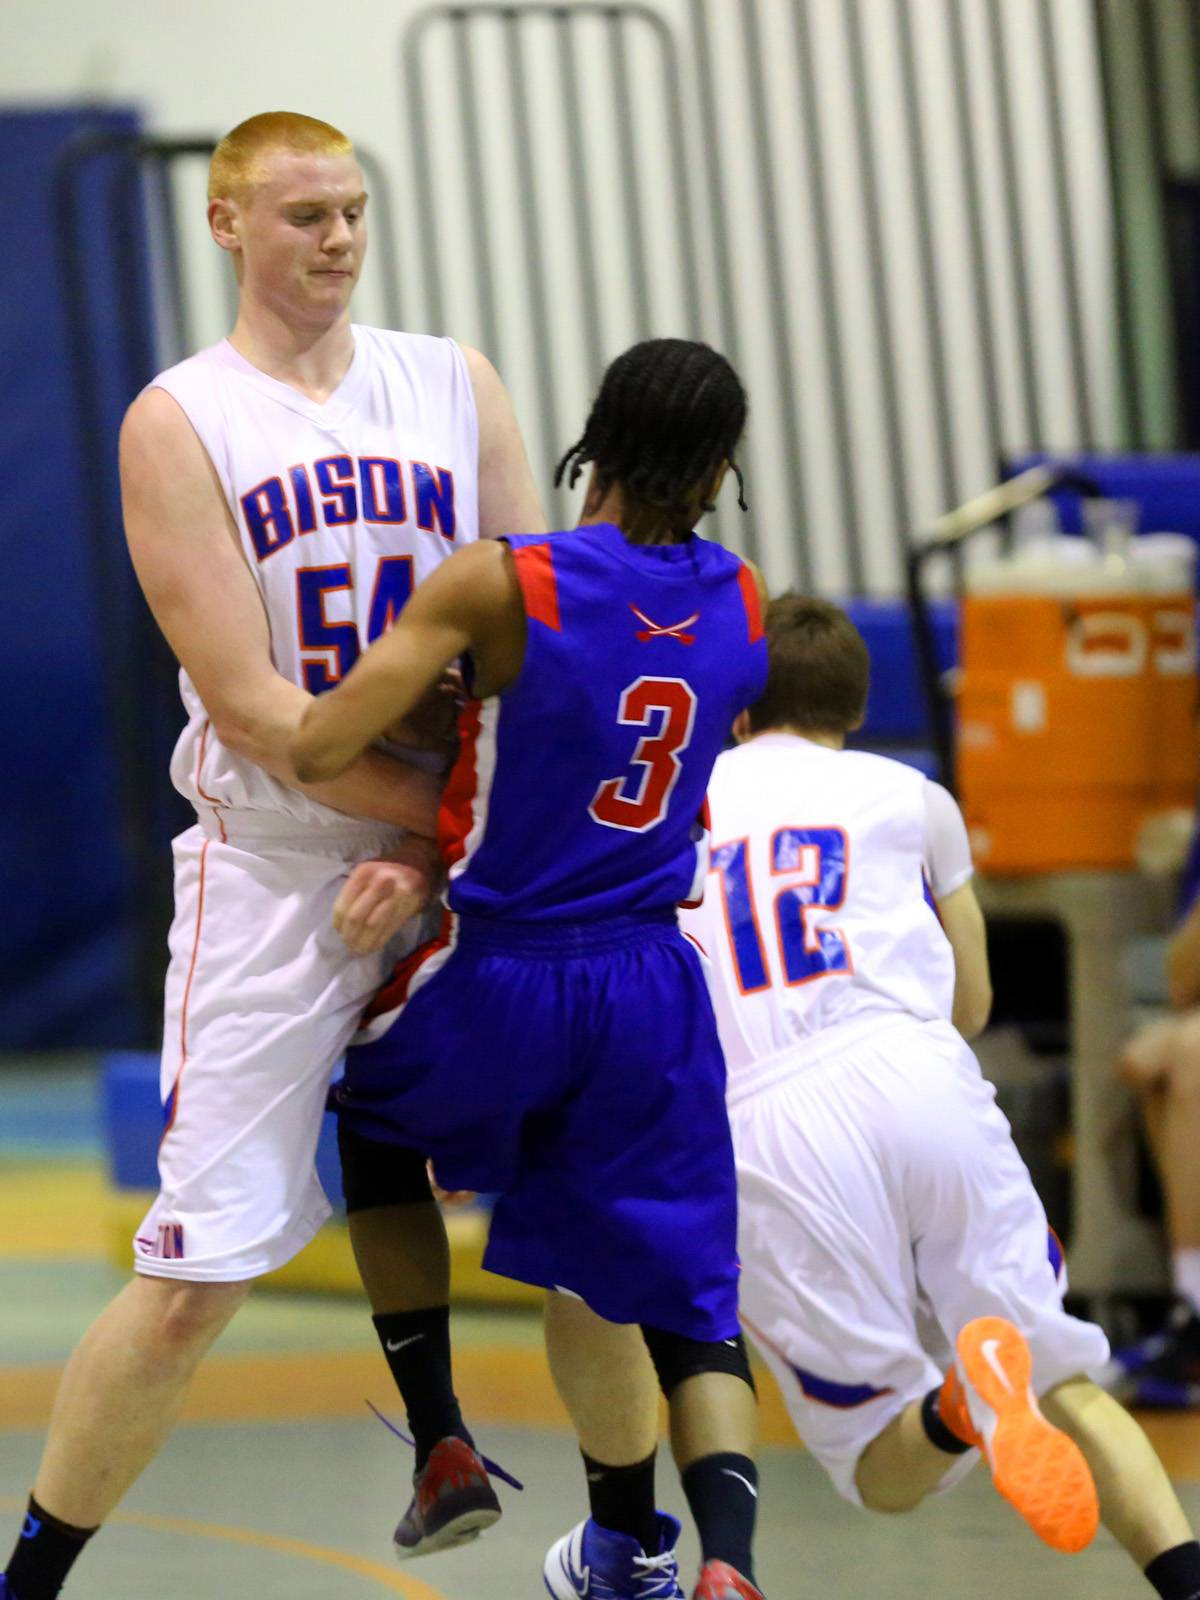 Fenton's Greg Wagner sets a screen against Glenbard South's Chaun Rickette .